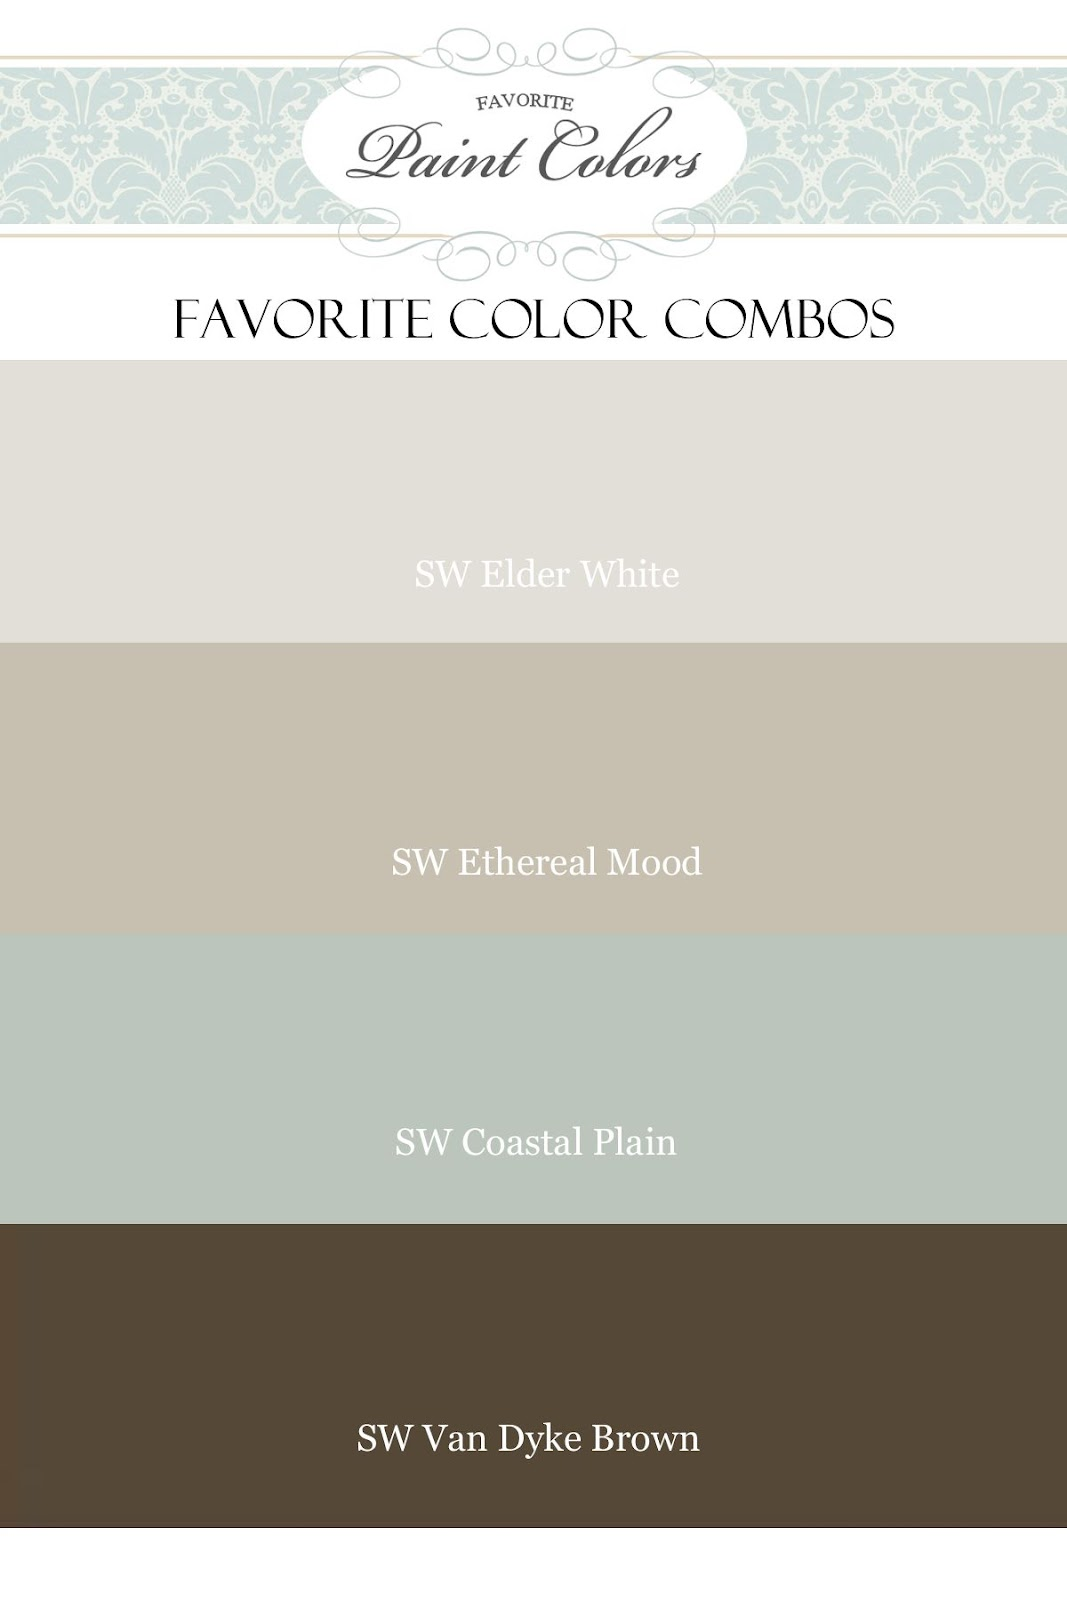 Favorite paint colors new blog design and features for Paint colors that go together